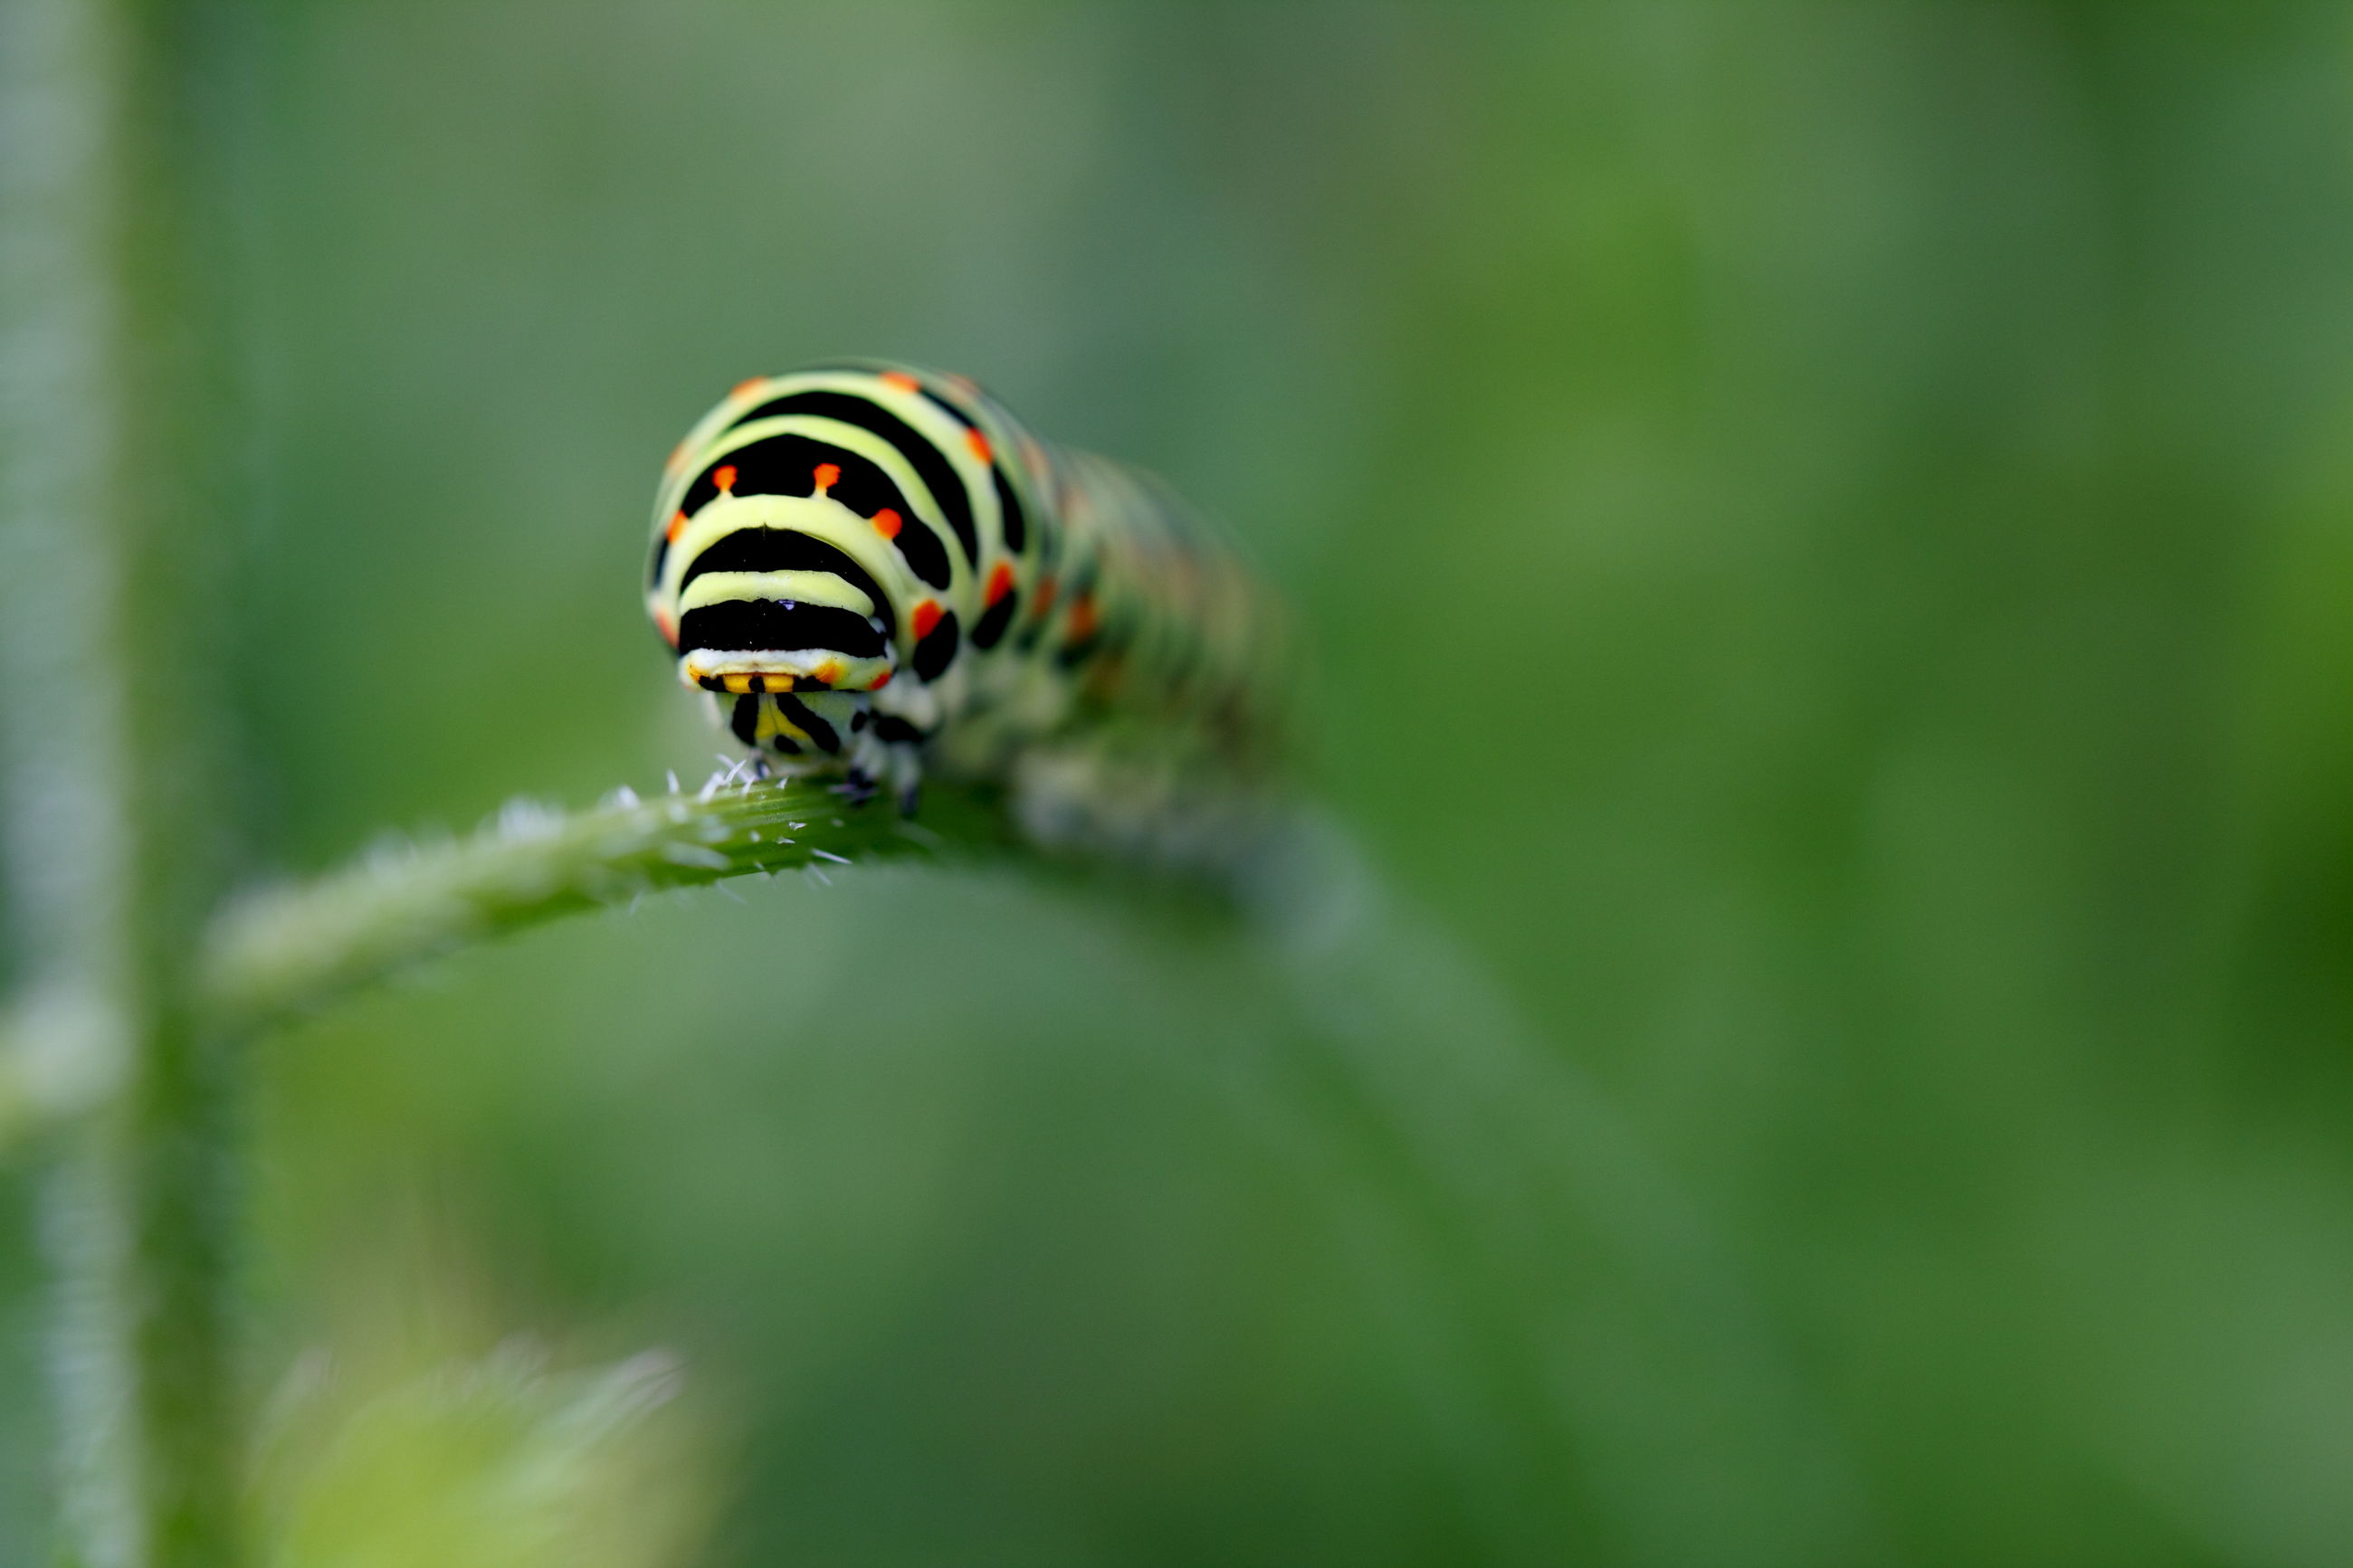 animal themes, animal, animal wildlife, green, one animal, wildlife, insect, nature, close-up, macro photography, plant, no people, beauty in nature, selective focus, flower, grass, day, outdoors, focus on foreground, ladybug, striped, plant part, beetle, macro, animal markings, leaf